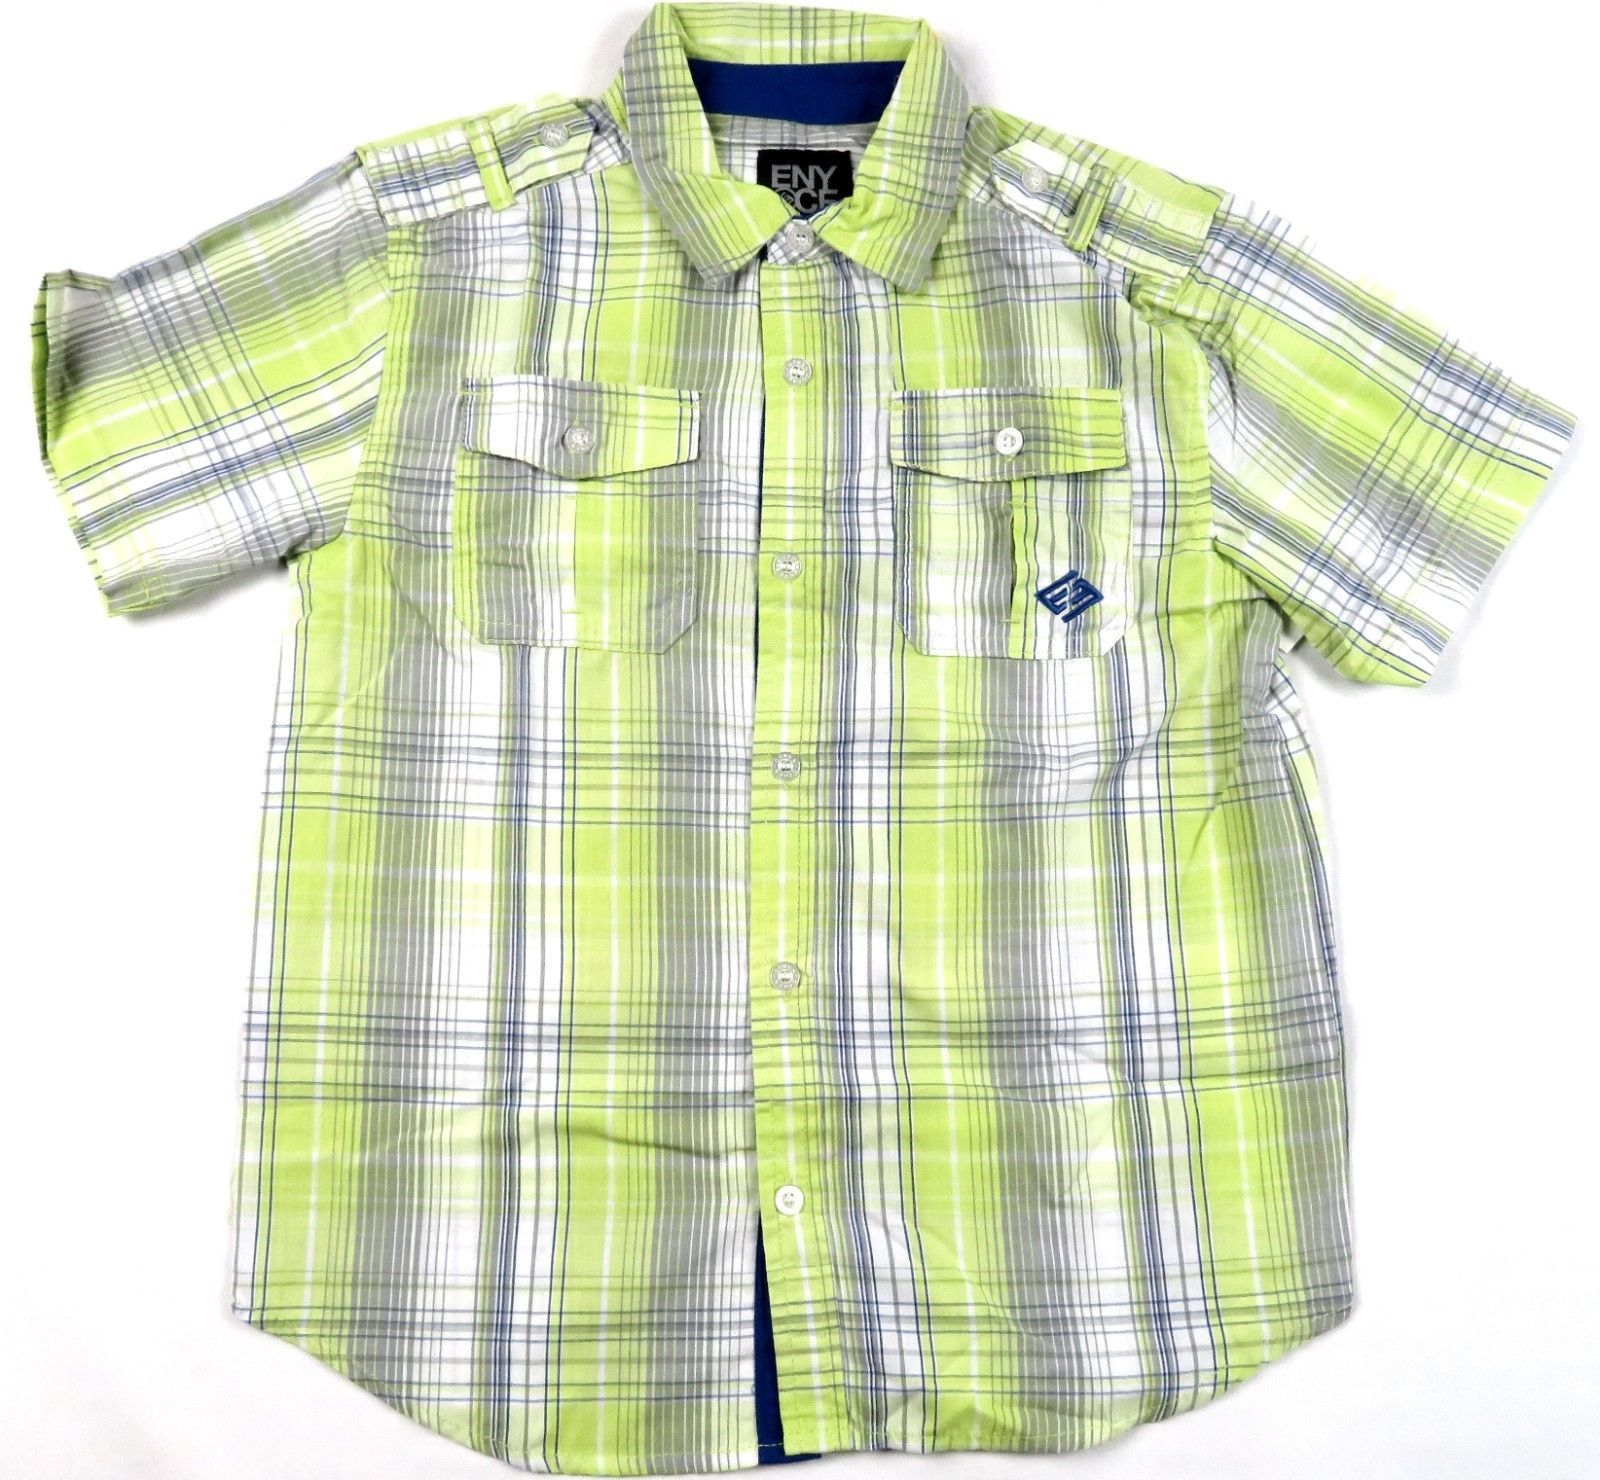 Boy's 4-7x Shirt ENYCE Button Front Woven Short Sleeve New Lime